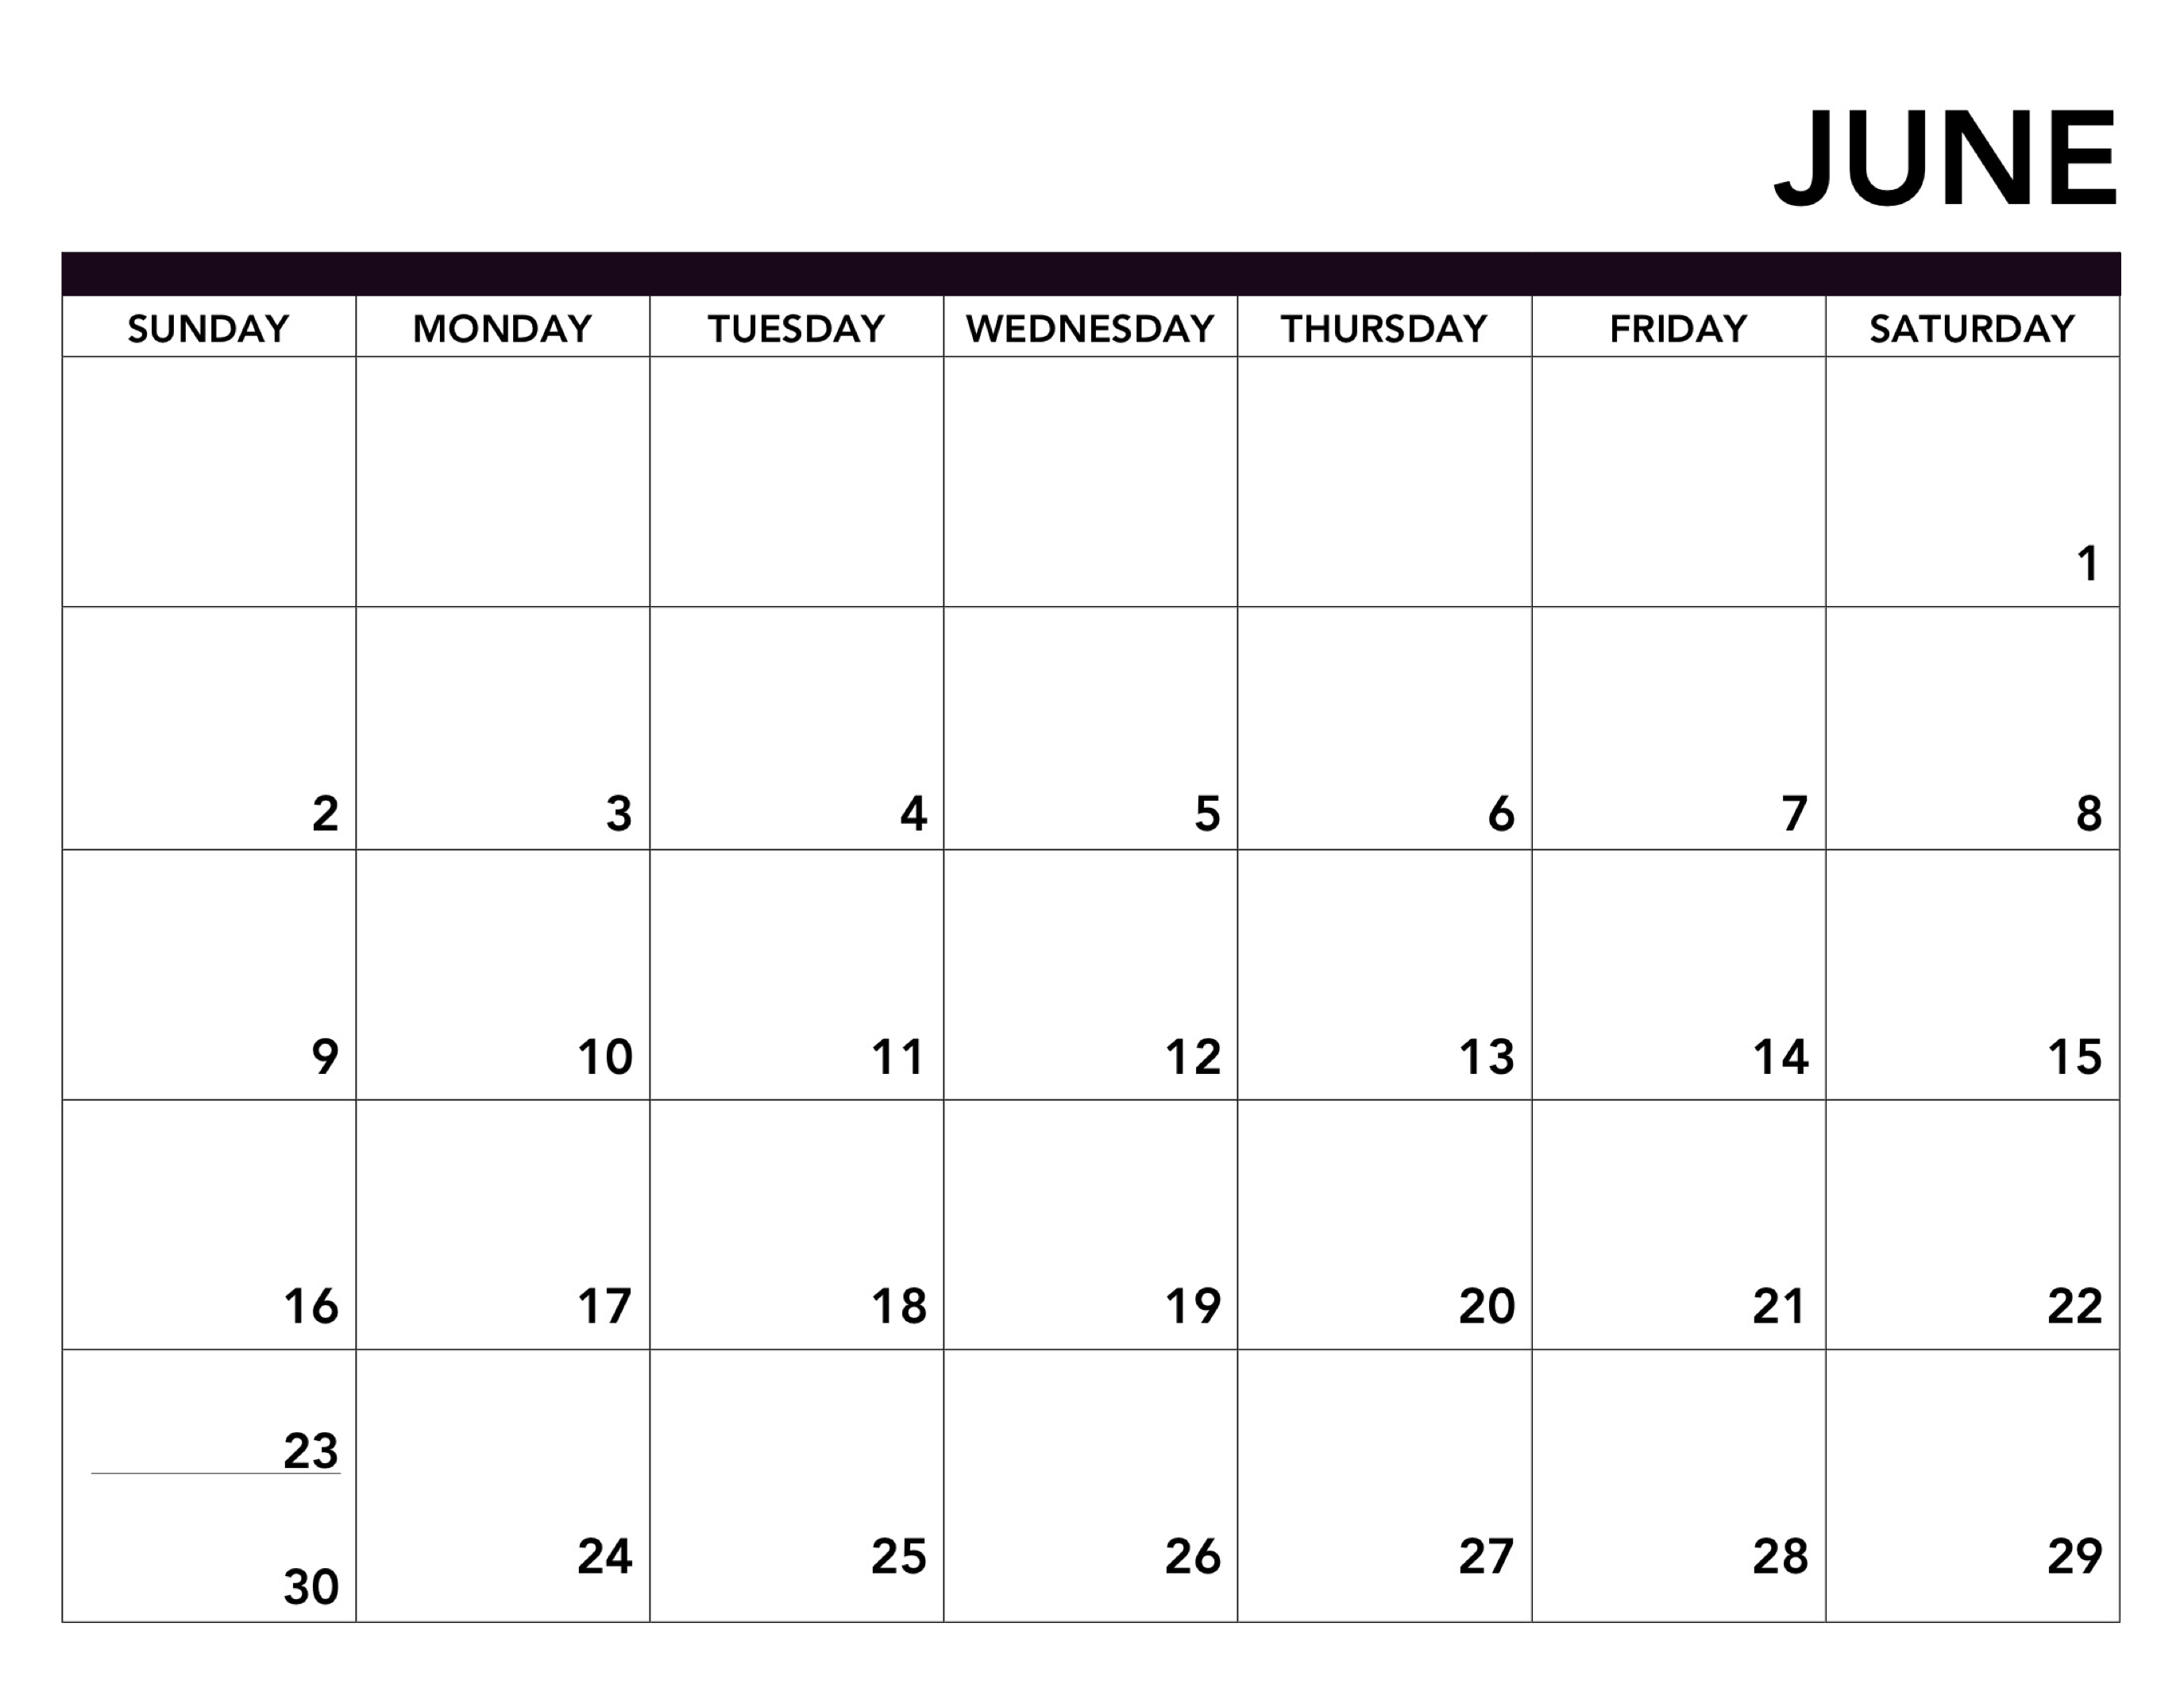 Blank June 2019 Printable Calendar.Editable June 2019 Calendar Printable Fillable Template Word